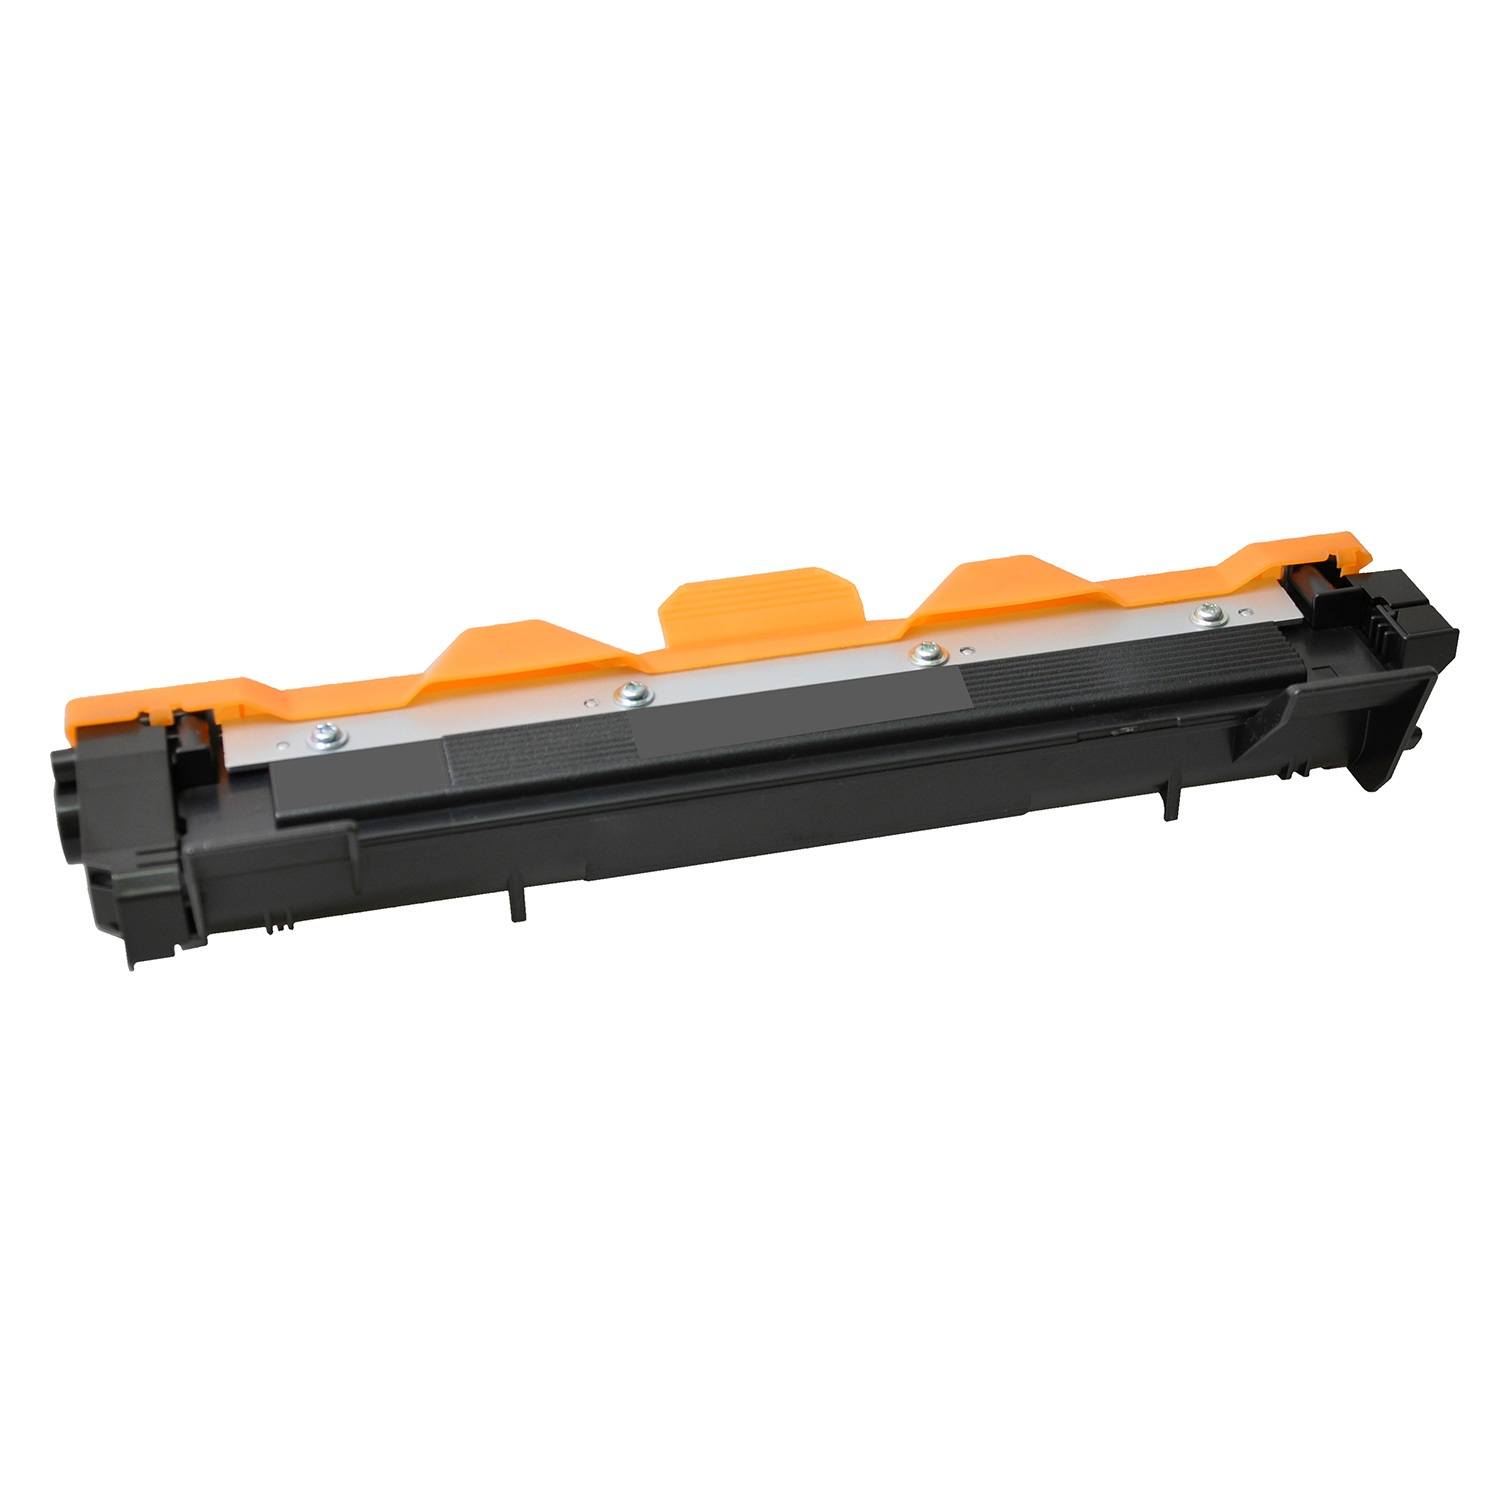 V7 Schwarz OEM Tonerpatrone Alternative zu: Brother TN1050 für DCP-1510 1512 1610 1612 HL-1110 1112 1210 1212 MFC-1810 1910